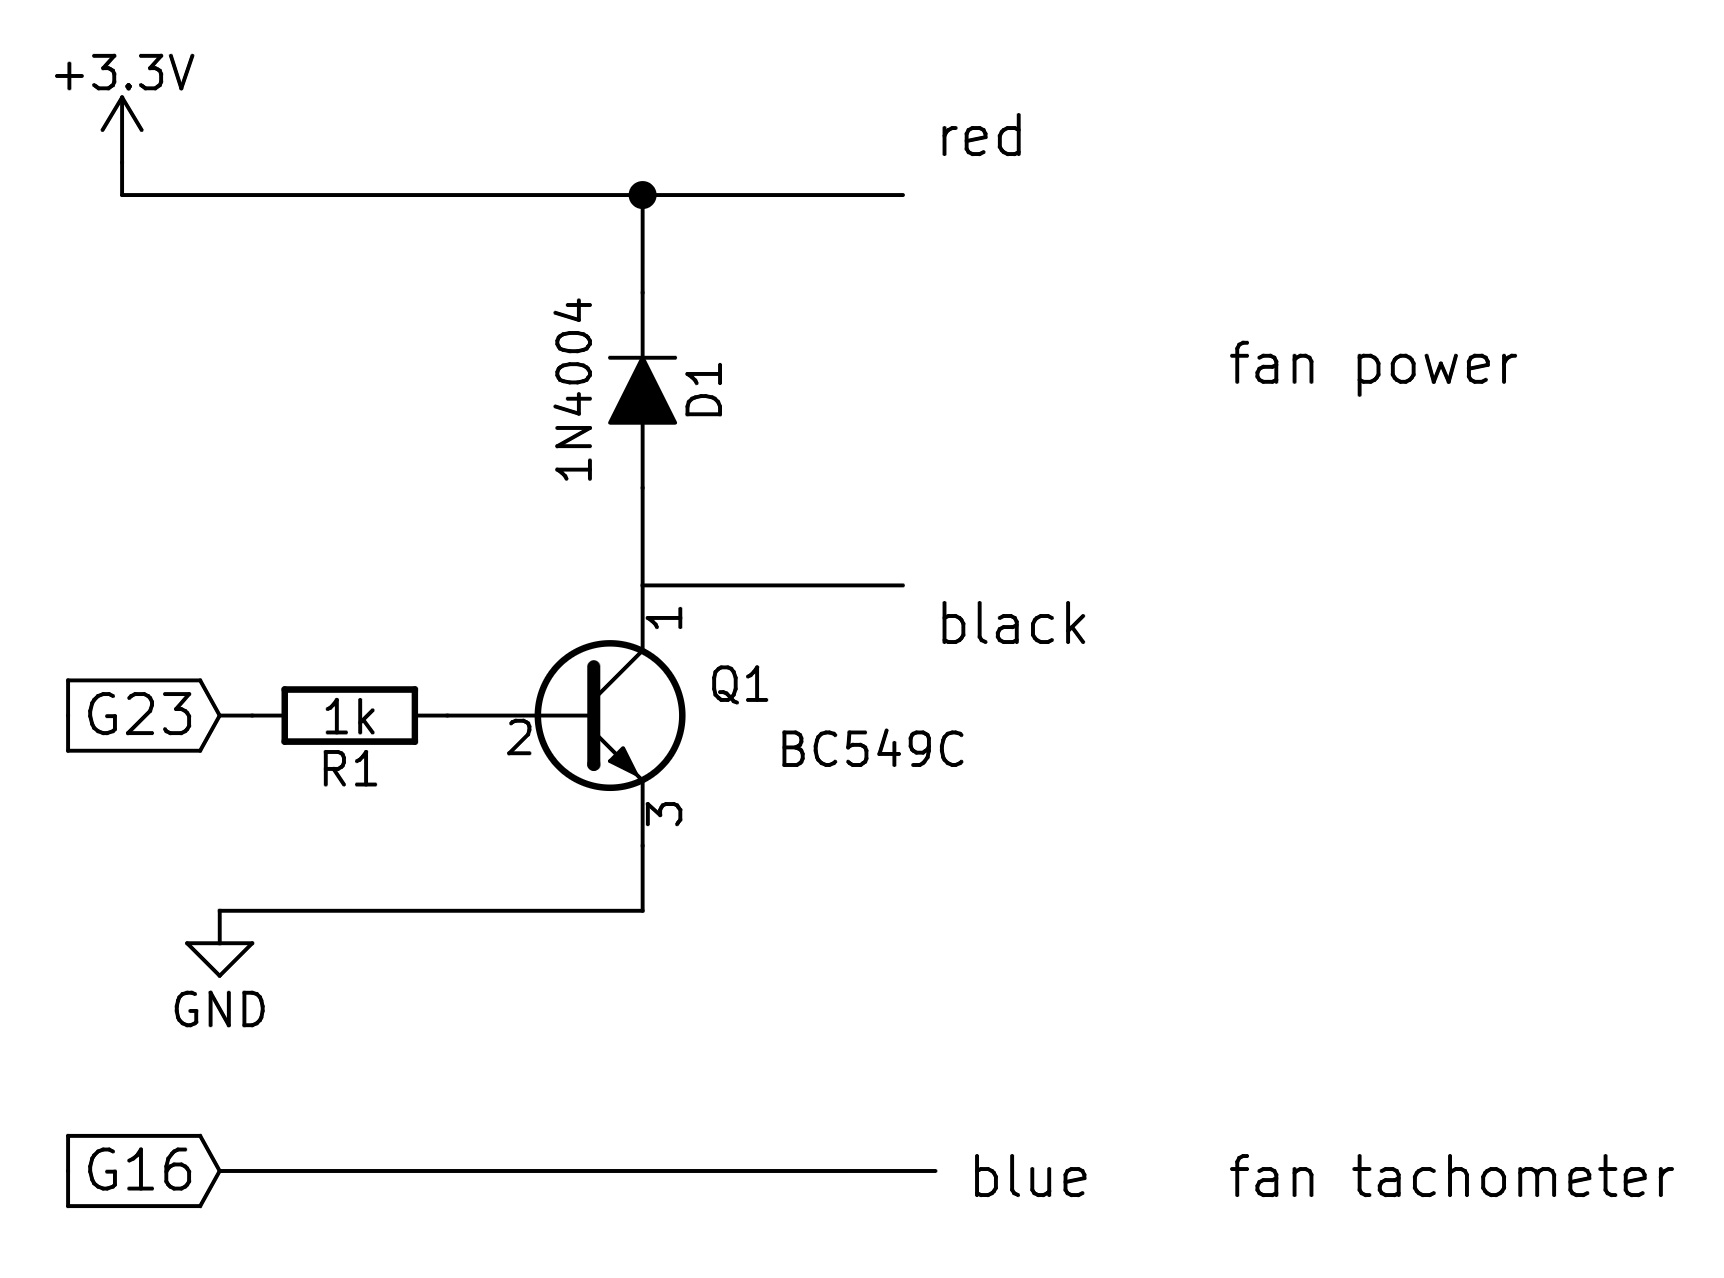 wiring 3w pwm fan wire diagram diagrams for wiring bathroom fan and lights  at honlapkeszites.co